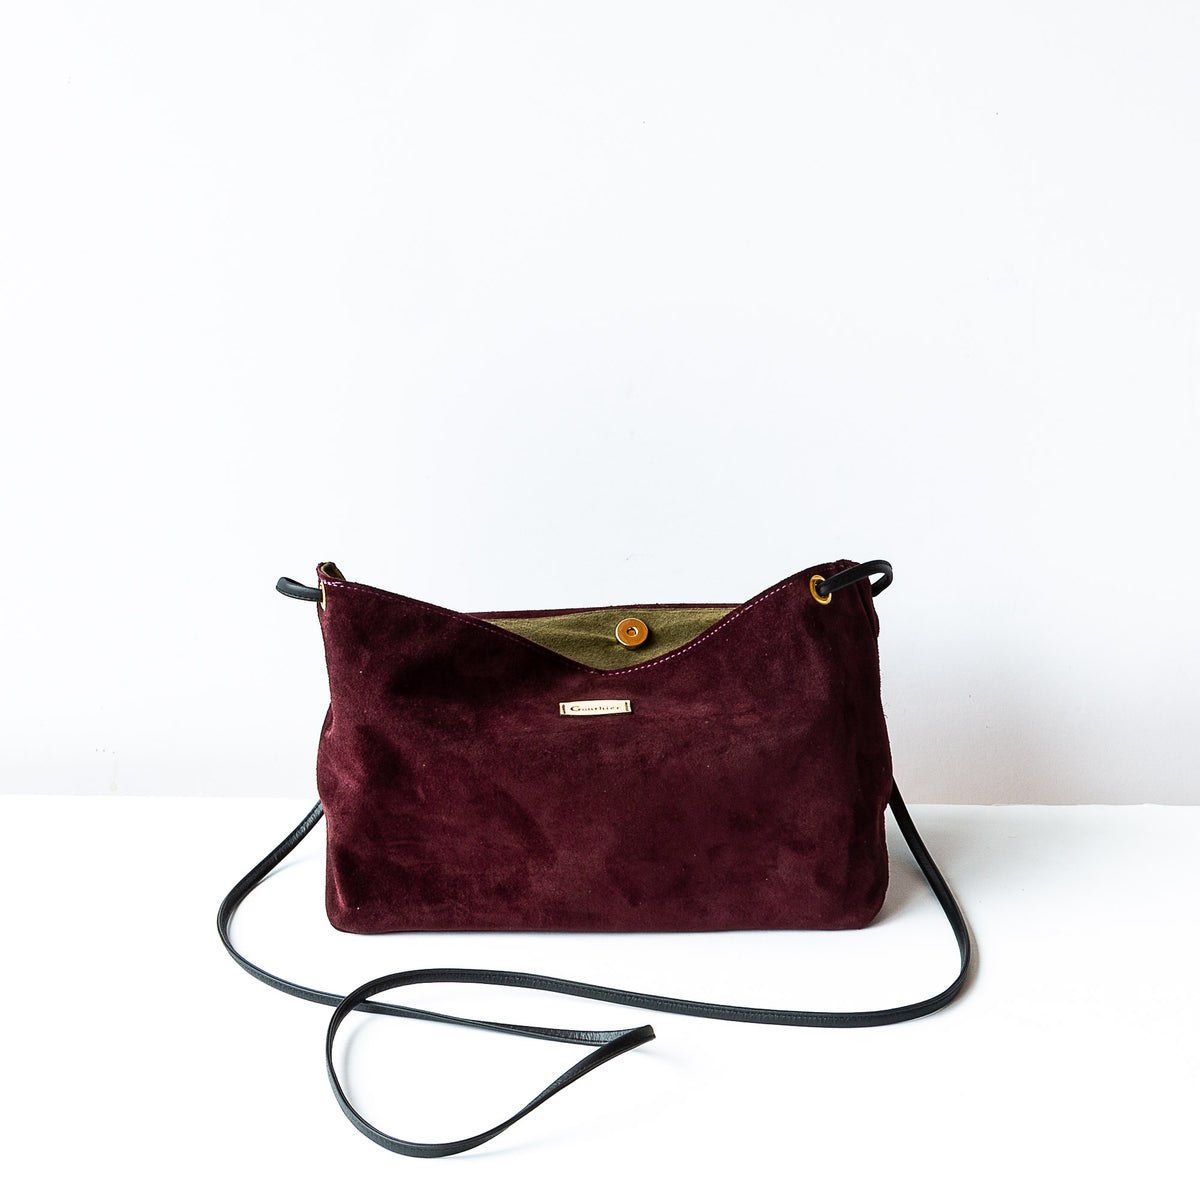 Interior View - Bordeaux & Khaki - Handmade Flap Purse in Calf Suede & Pork Suede Lining - Sold by Chic & Basta